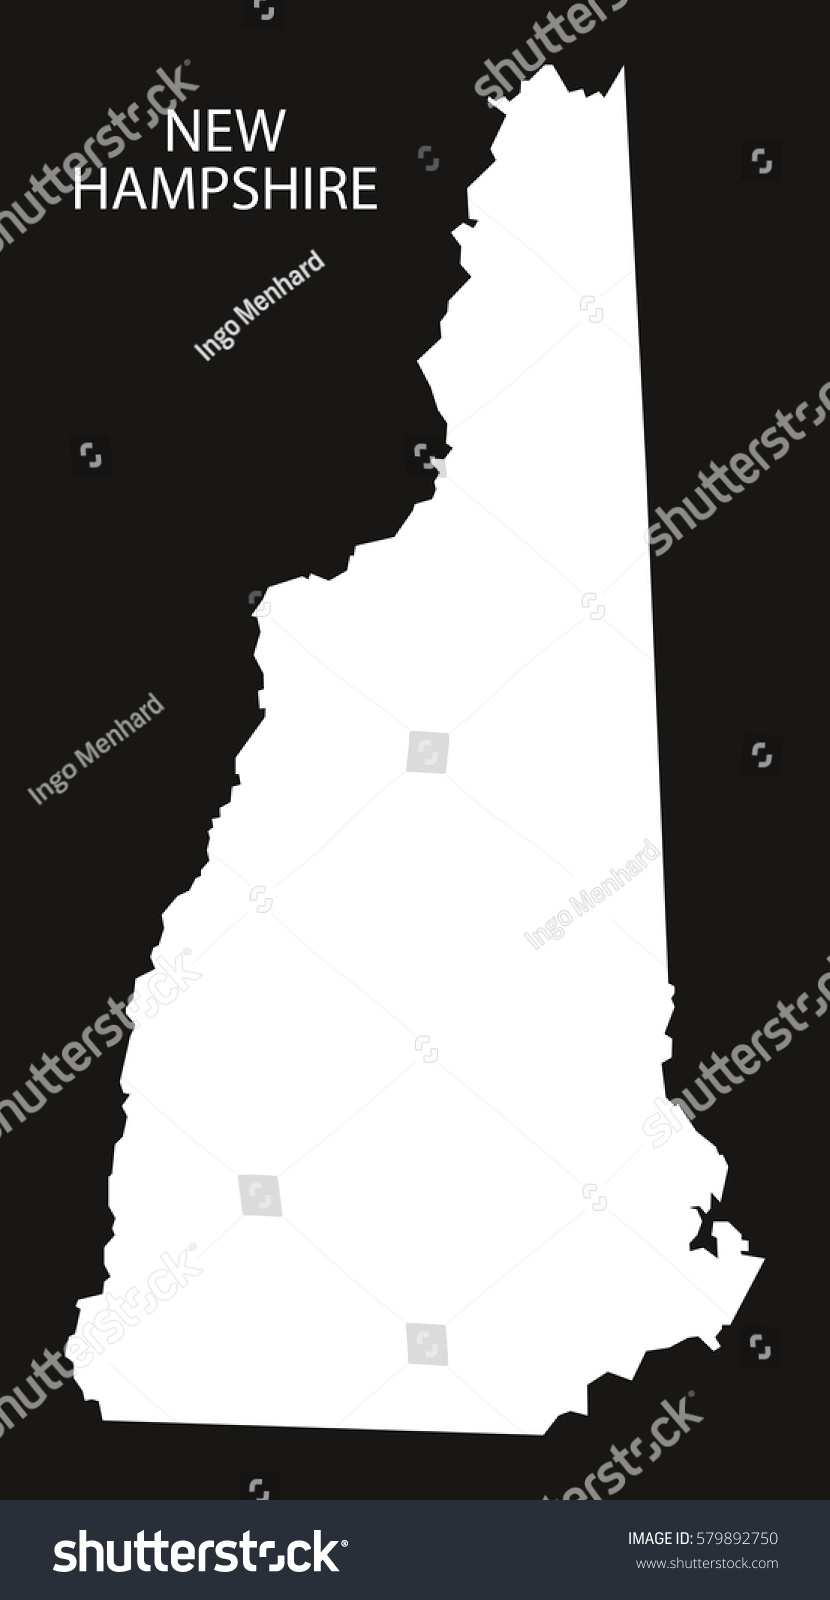 Where Is New Hampshire Location Of New Hampshire New Hampshire - New hampshire in us map